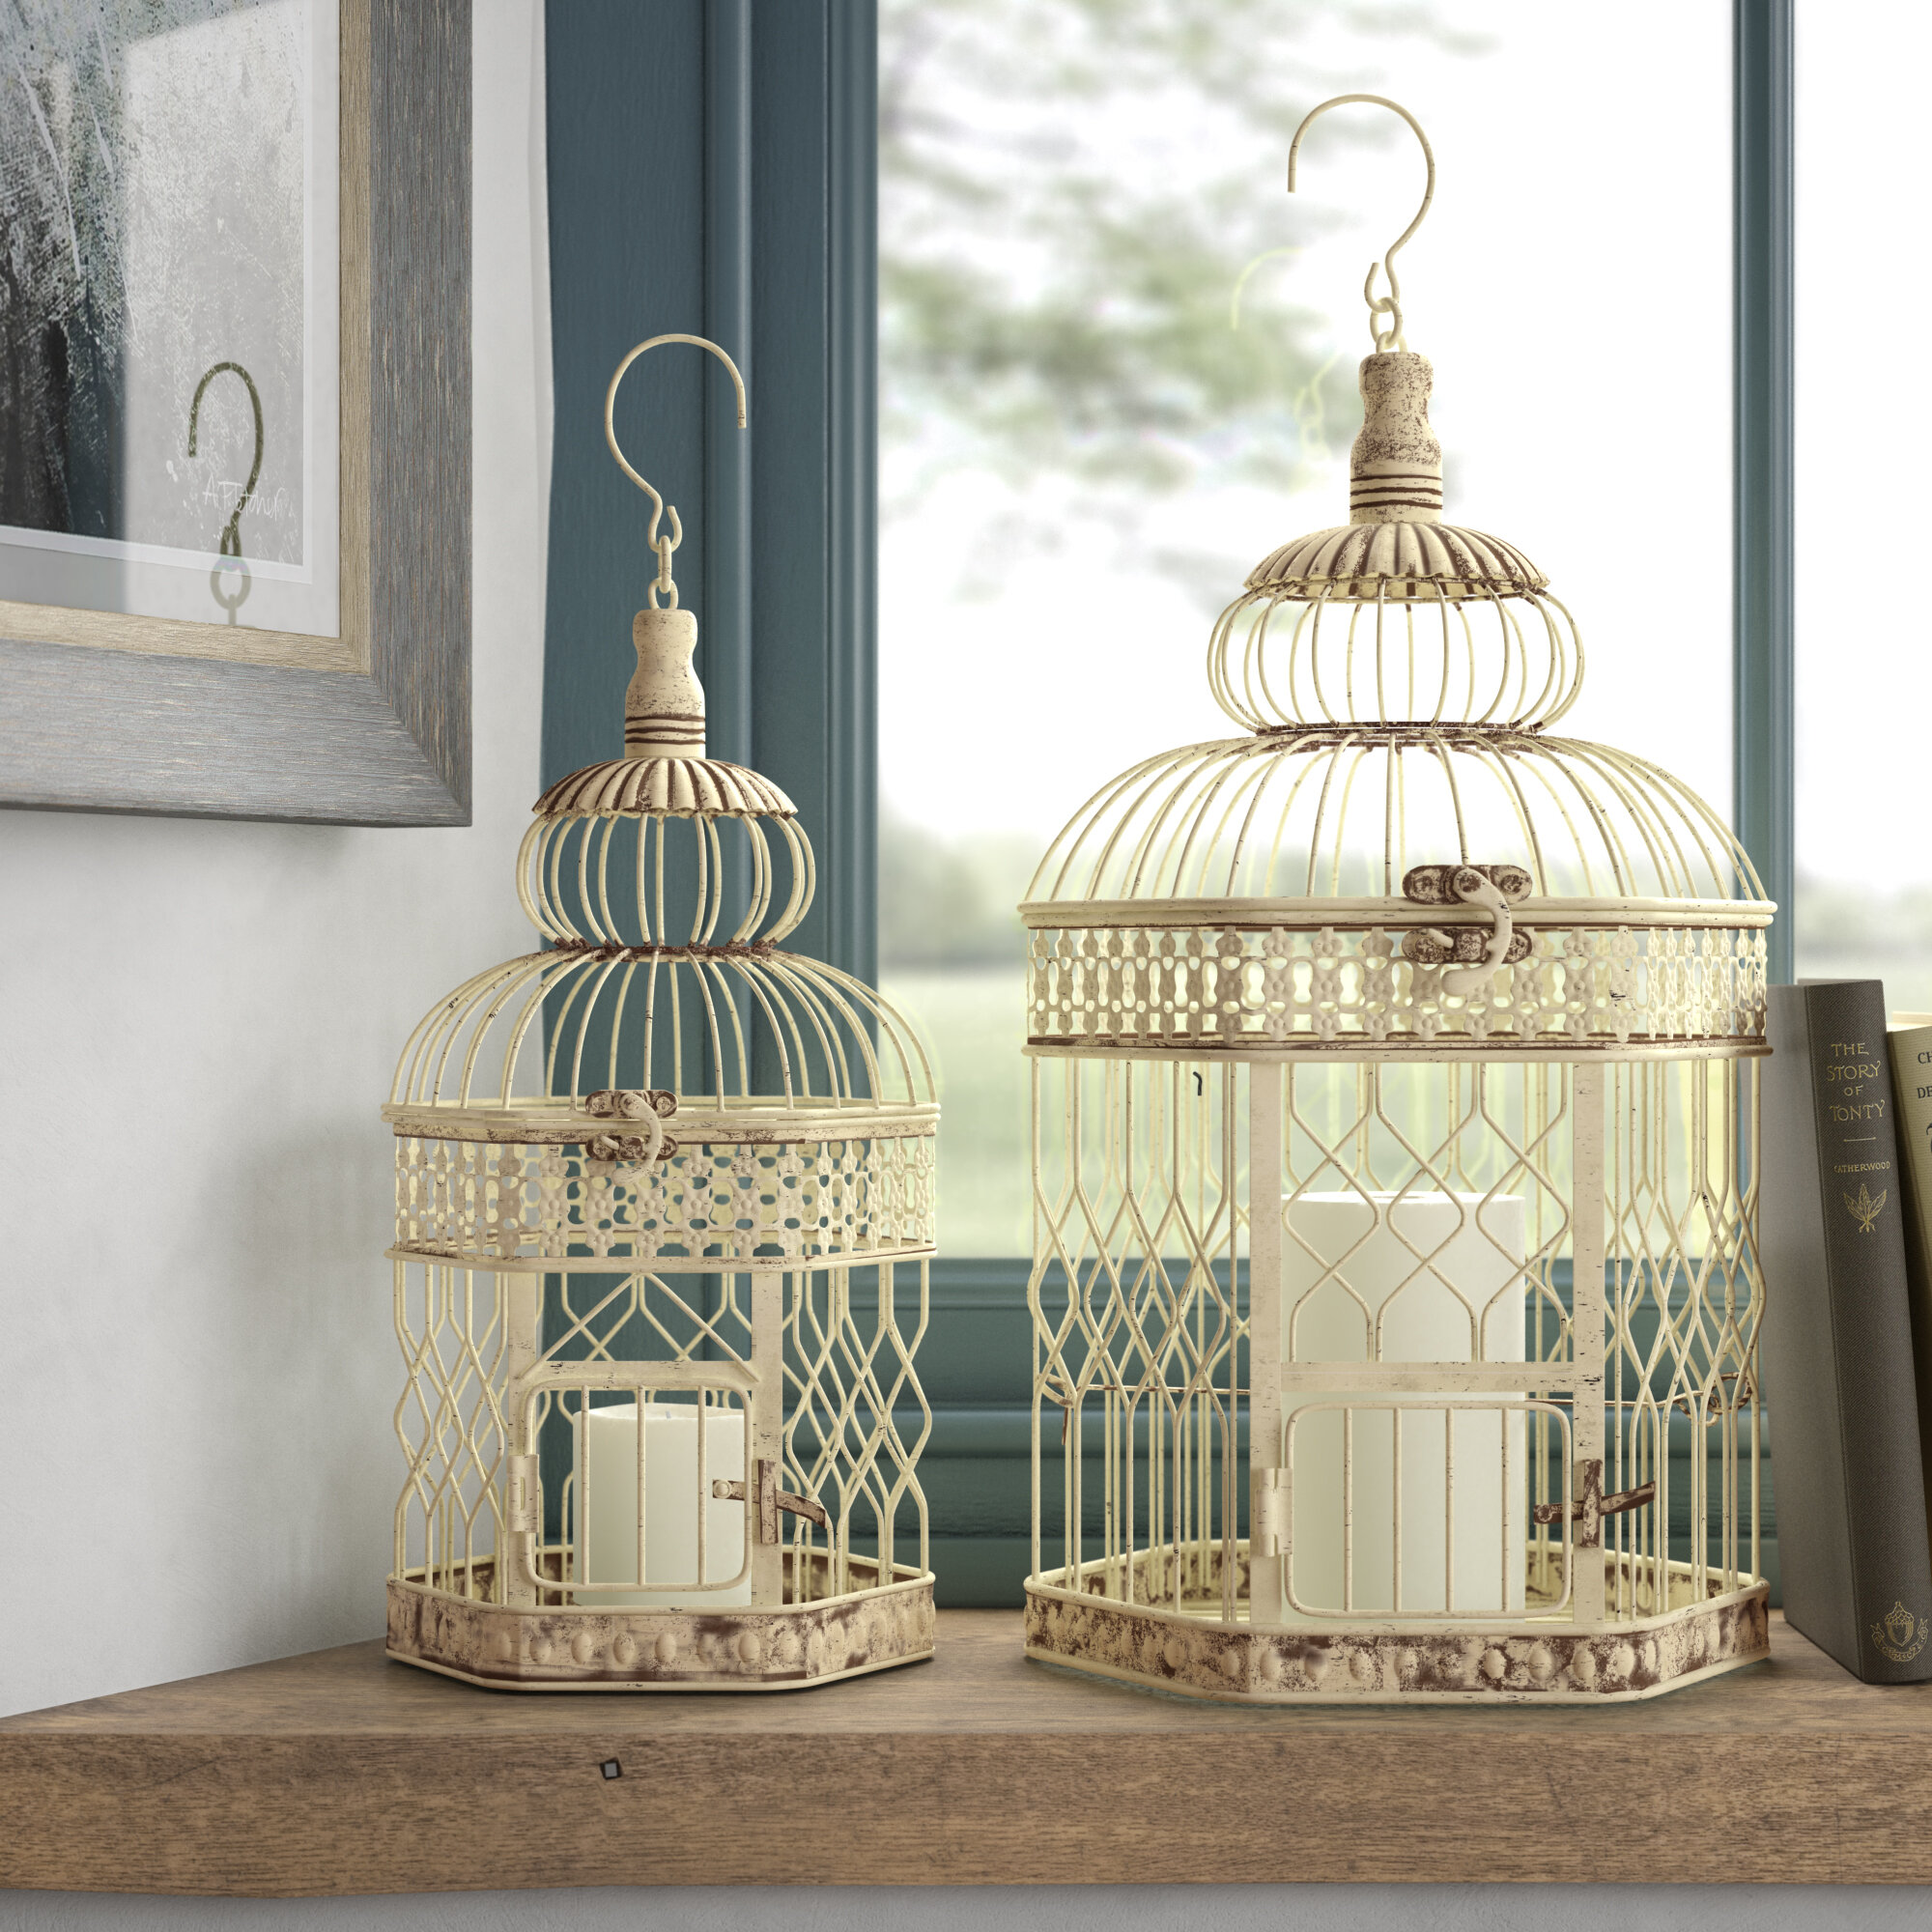 Decorative Bird Houses Cages You Ll Love In 2021 Wayfair